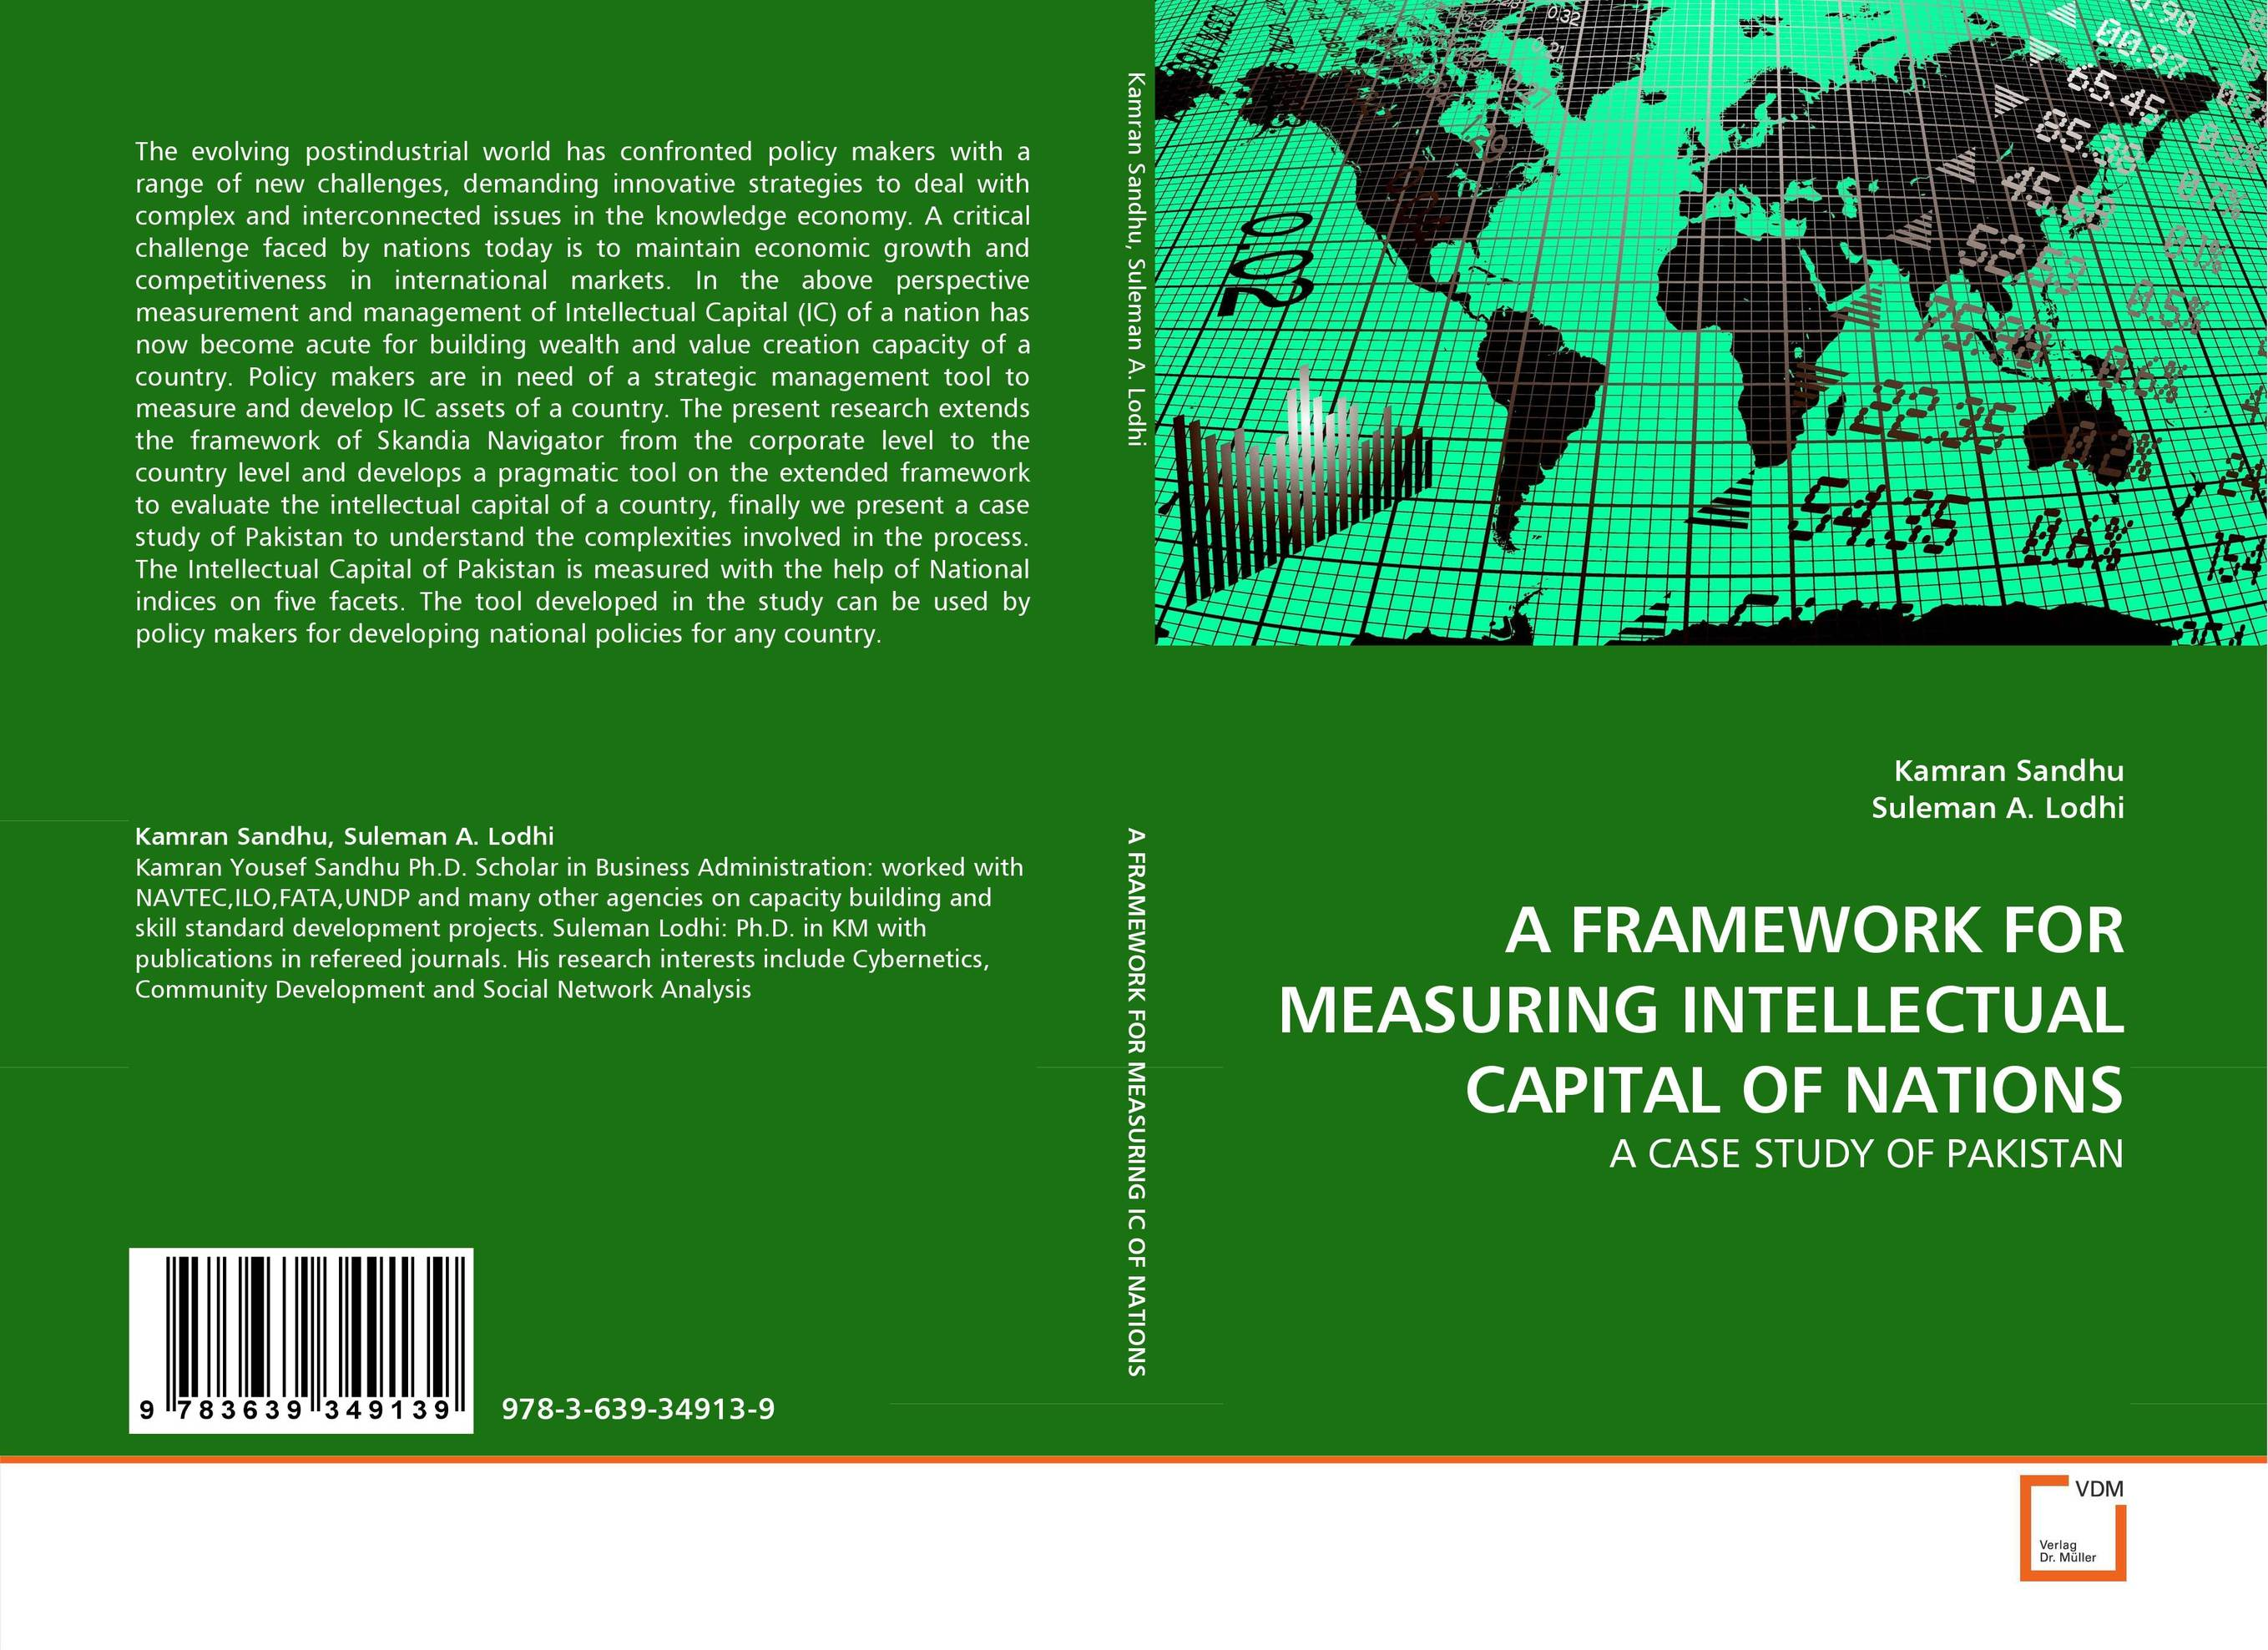 A FRAMEWORK FOR MEASURING INTELLECTUAL CAPITAL OF NATIONS a decision support tool for library book inventory management